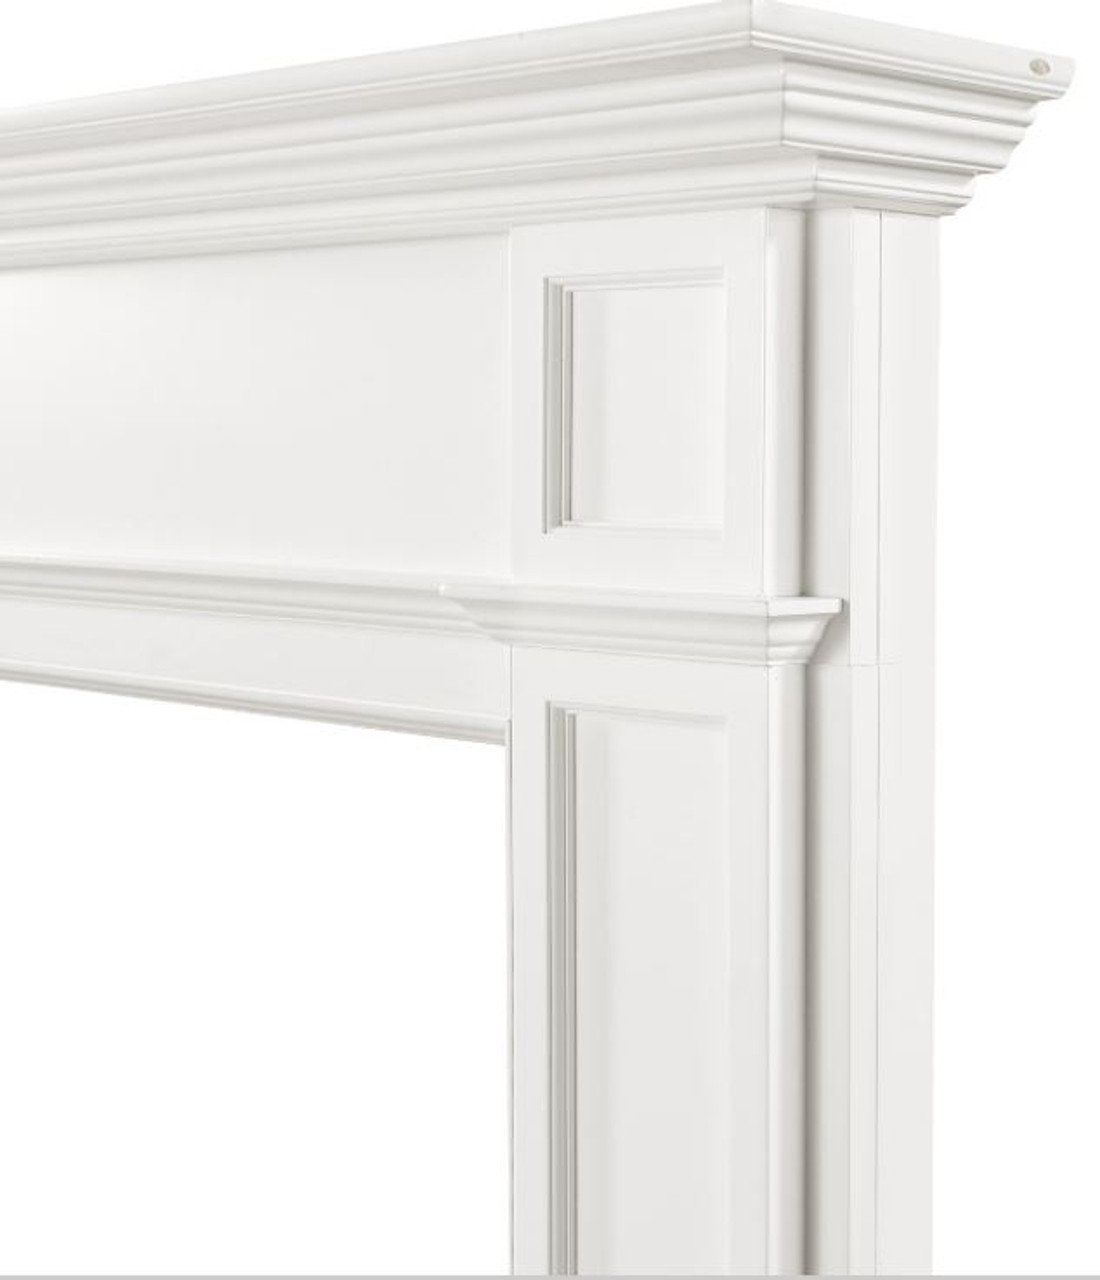 The Marshall Fireplace Mantel Surround, 56 Right Close Up